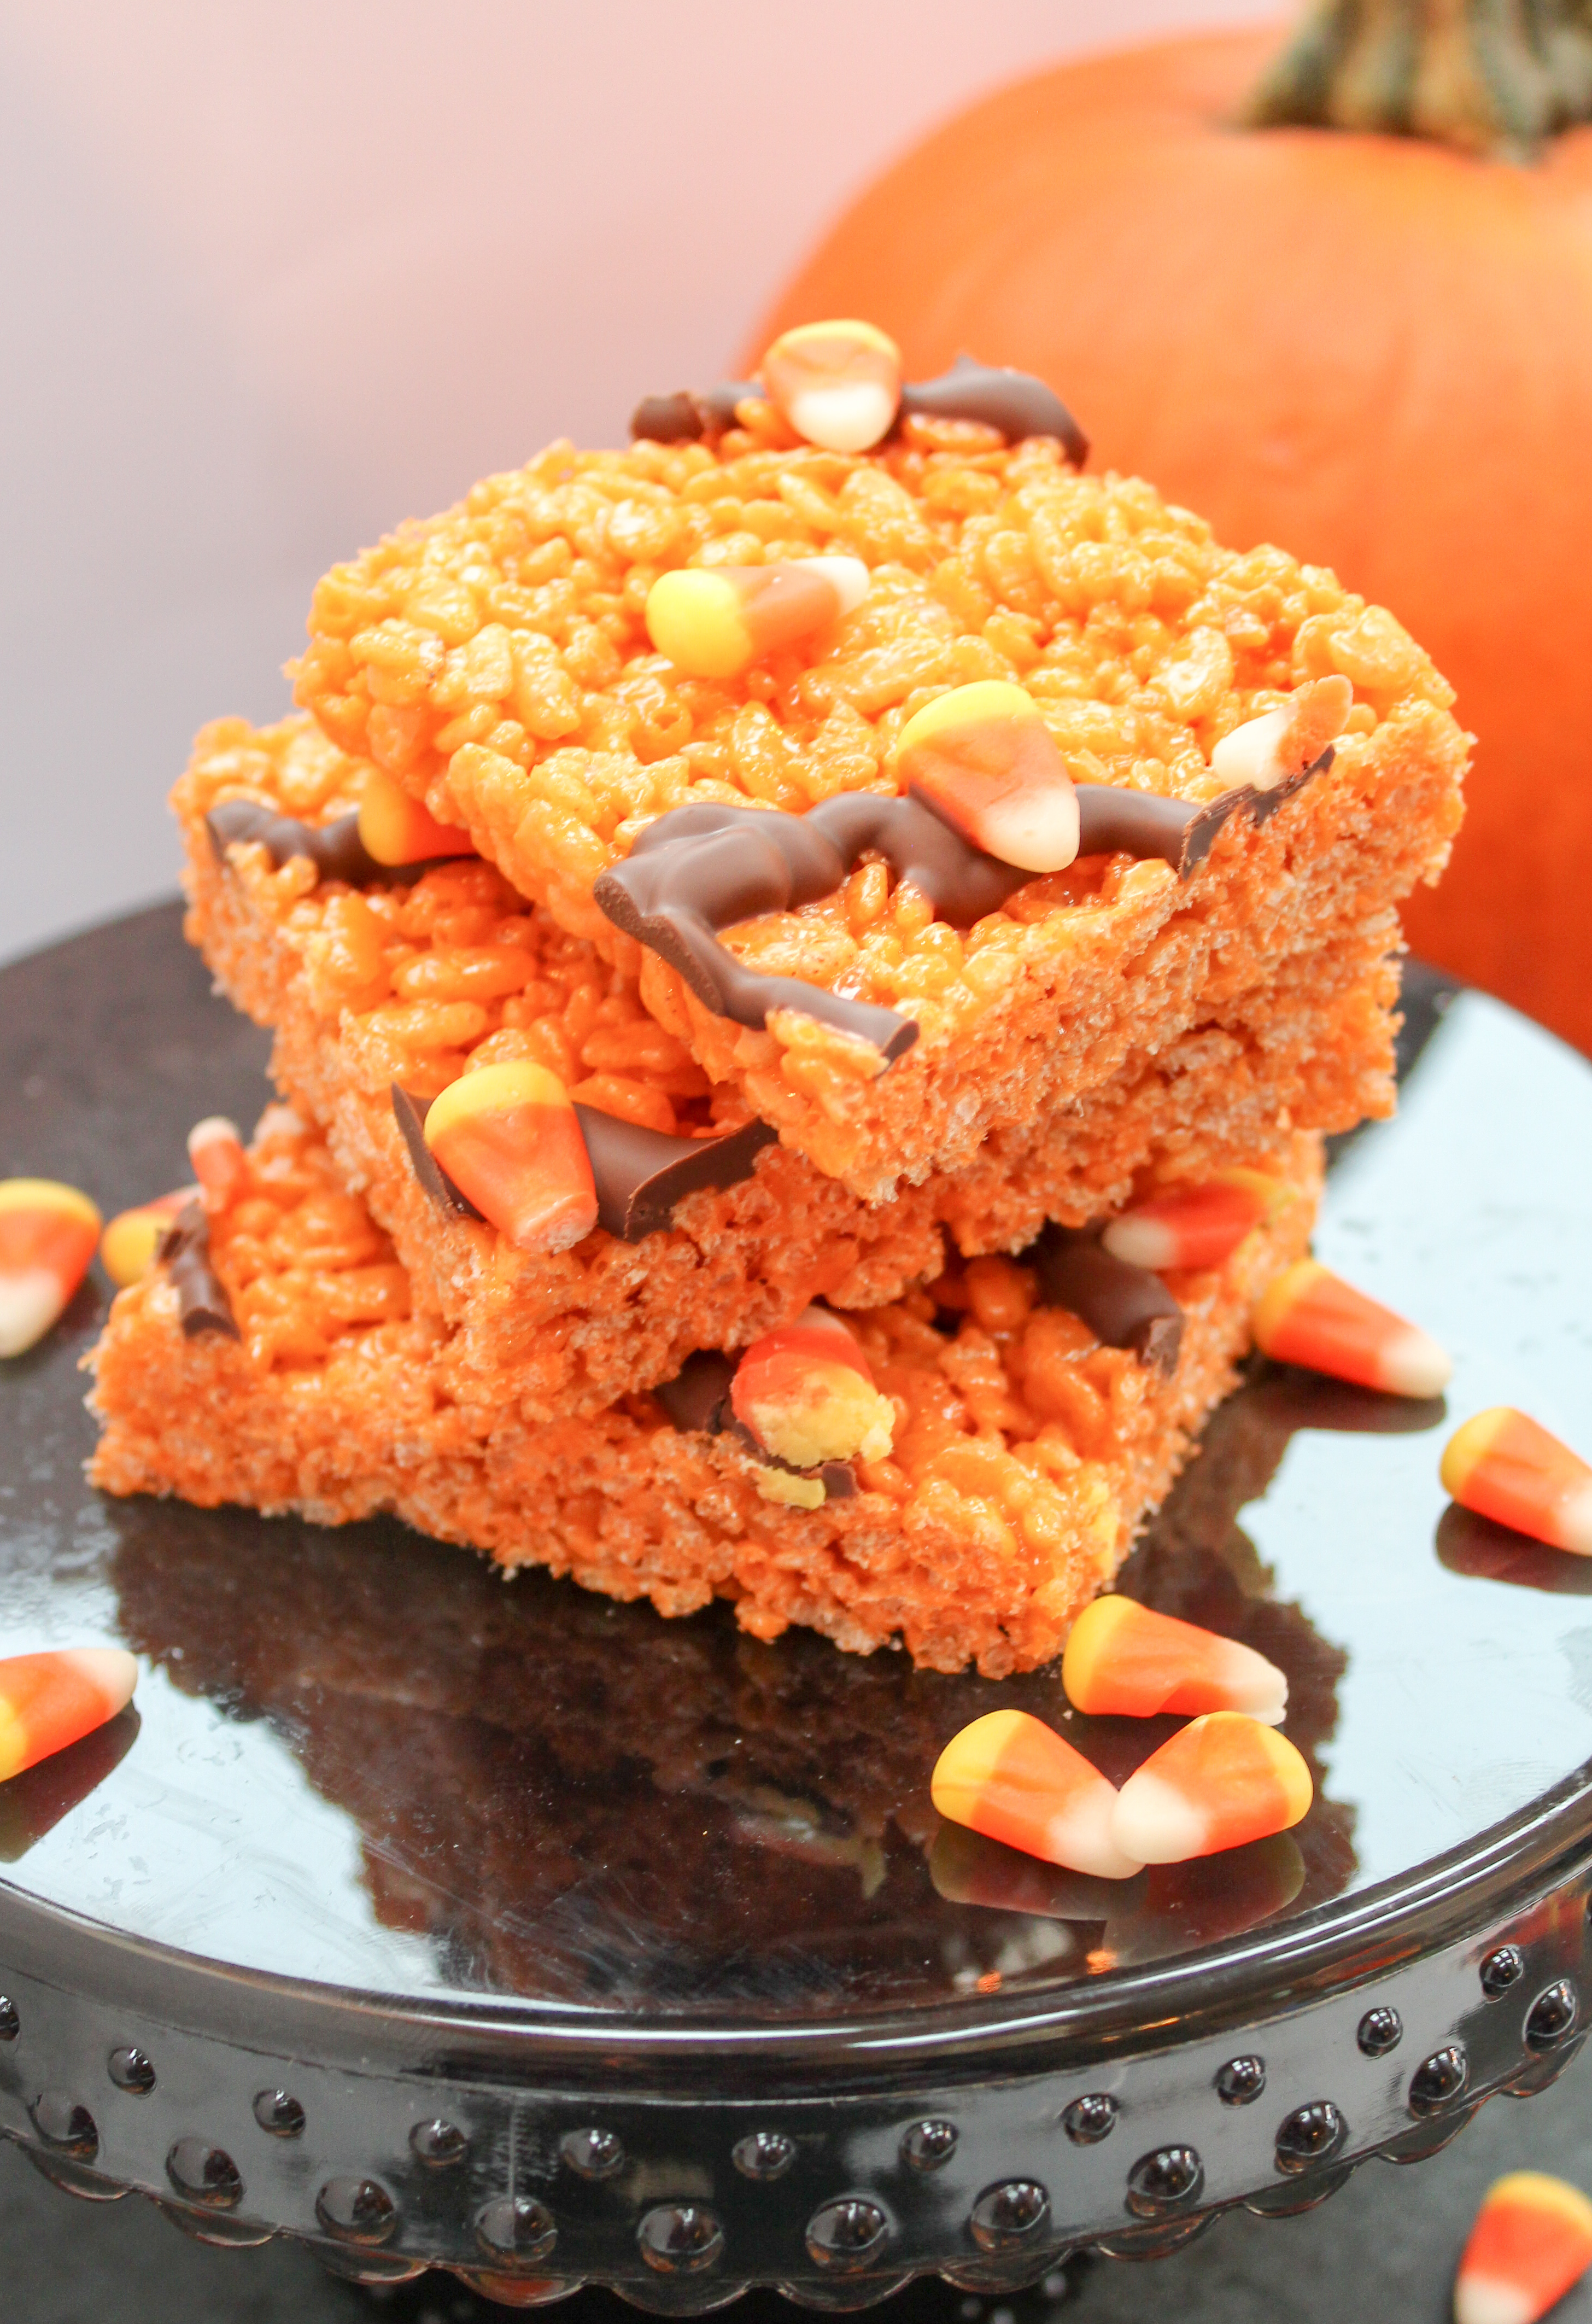 Rice Crispy Cereal cut into squares. Garnished with Candy Corn and Chocolate